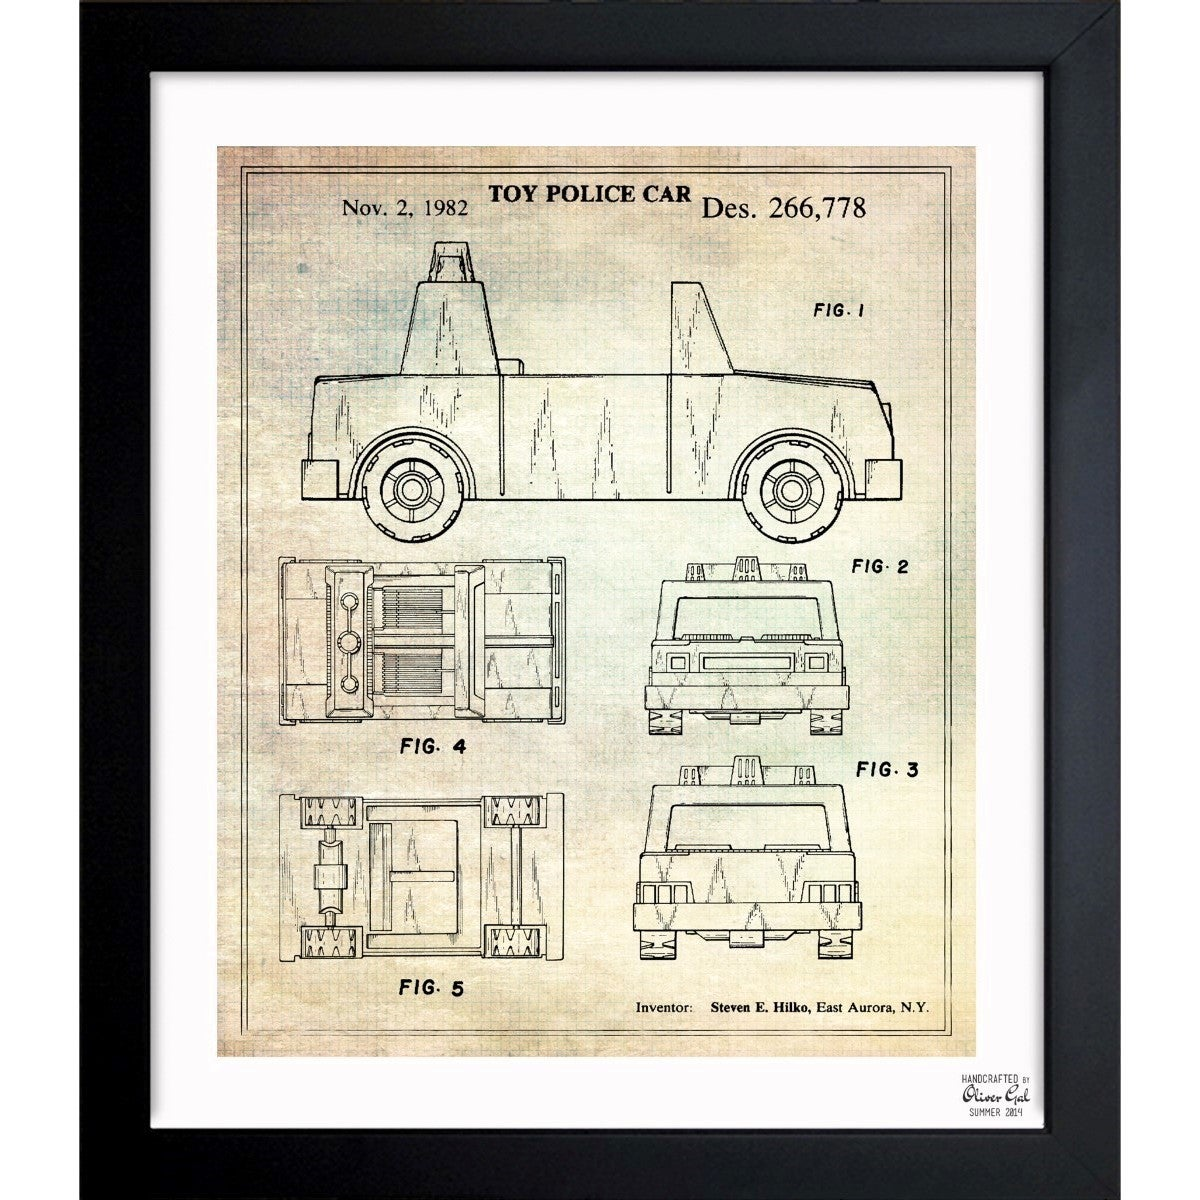 Shop oliver gal toy police car 1982 framed blueprint art free shop oliver gal toy police car 1982 framed blueprint art free shipping today overstock 11534026 malvernweather Images